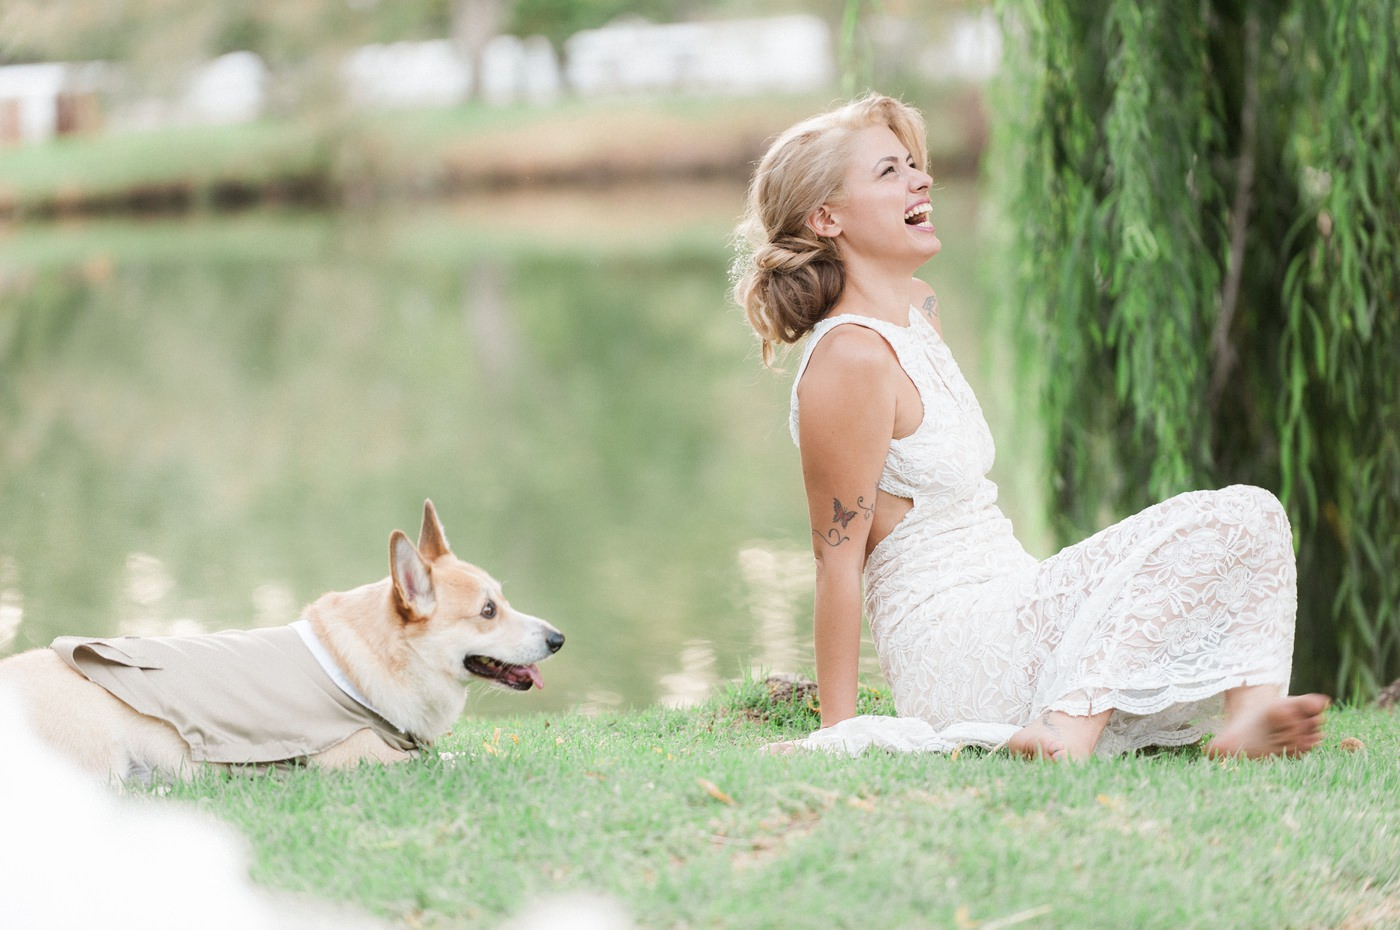 Spier wine farm engagement photograph